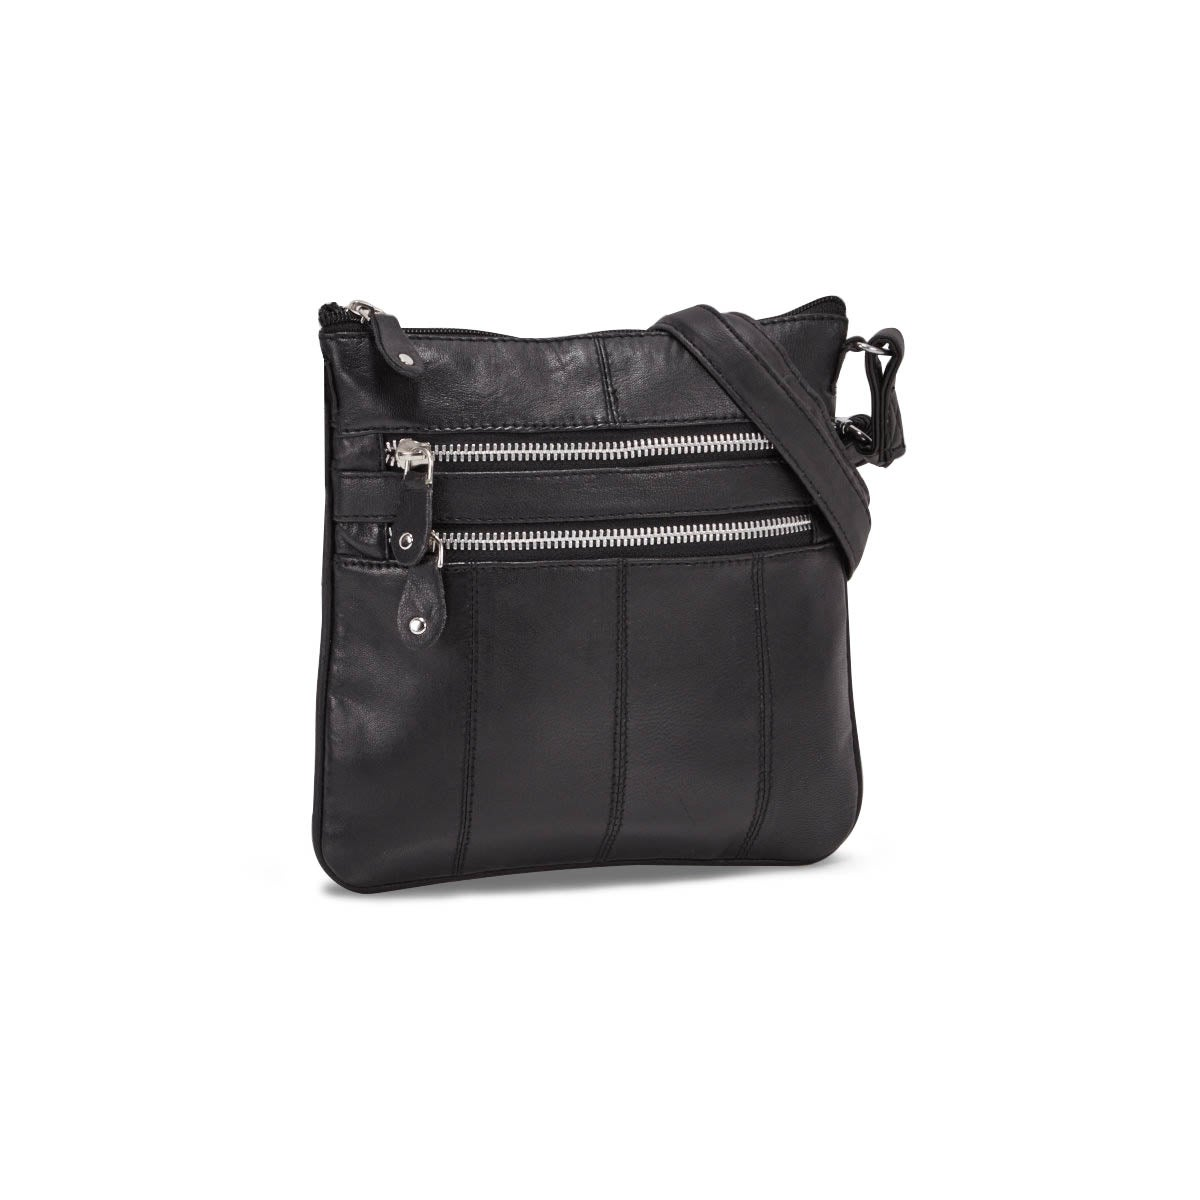 Lds blk sheep leather cross body bag